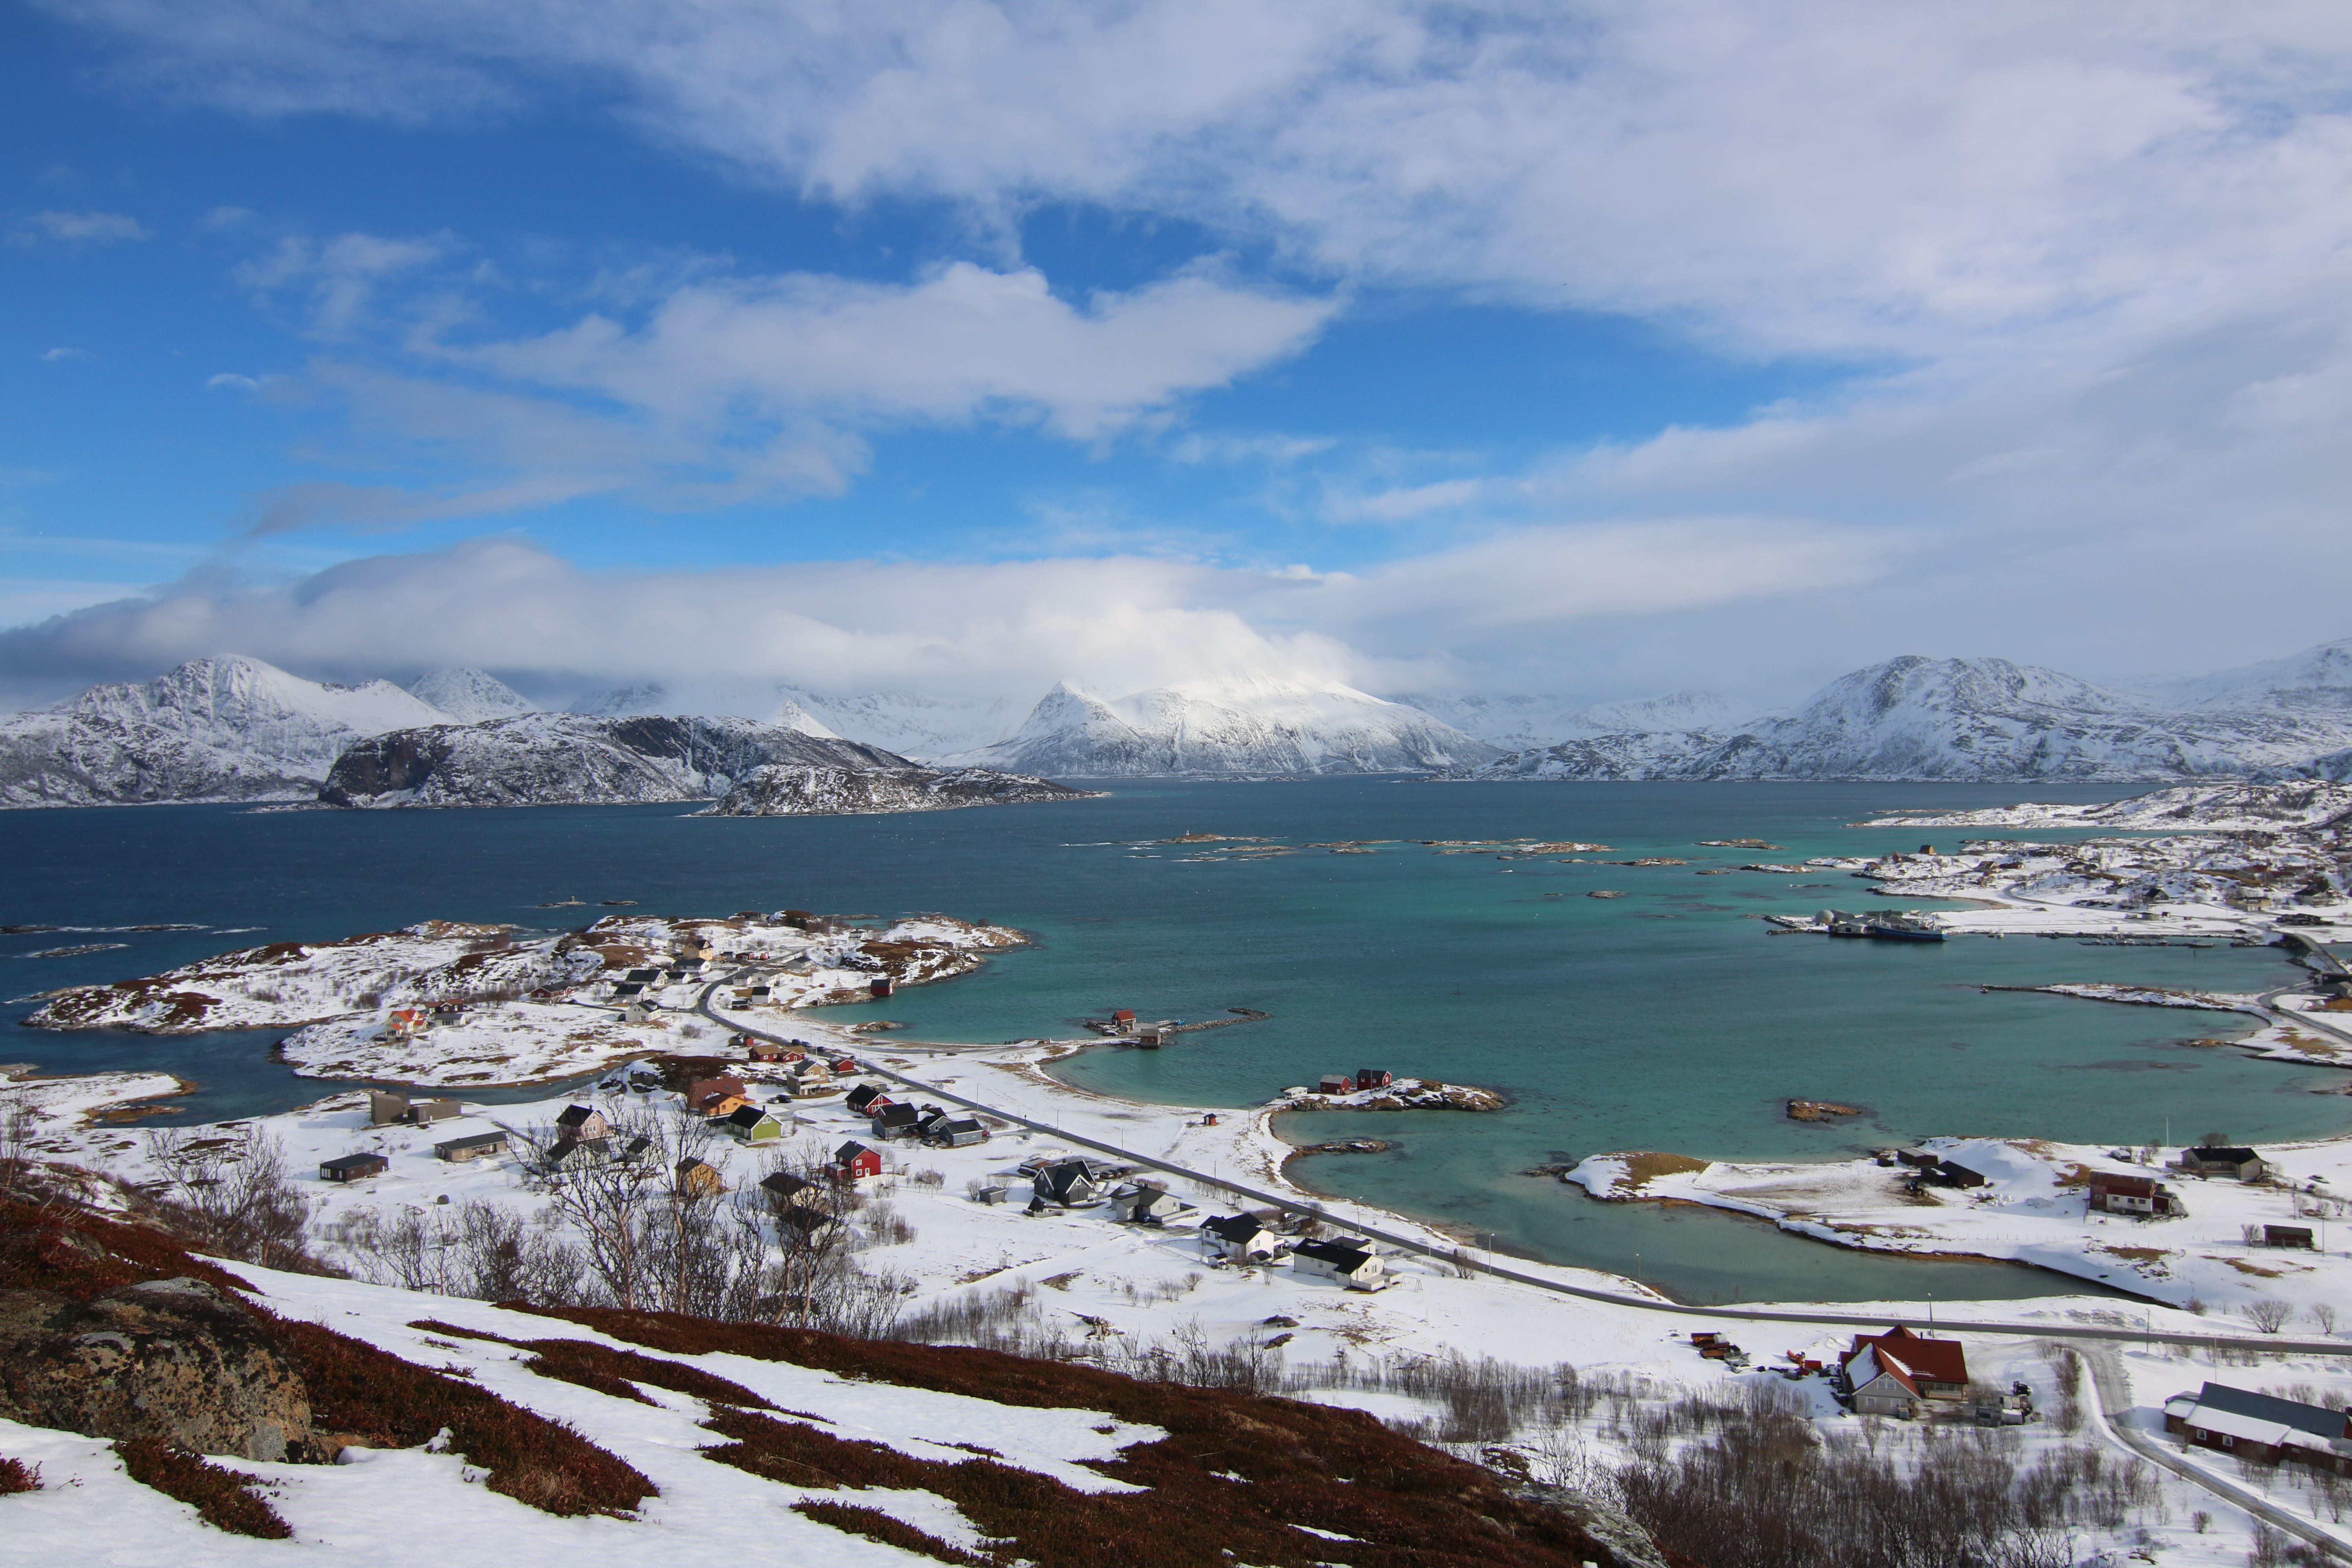 !SPECIAL PACKAGE! 2 Nights at Polar Cabin - All Inclusive - Accomodation, Food and Activities (2-6 people) - Polar Cabin